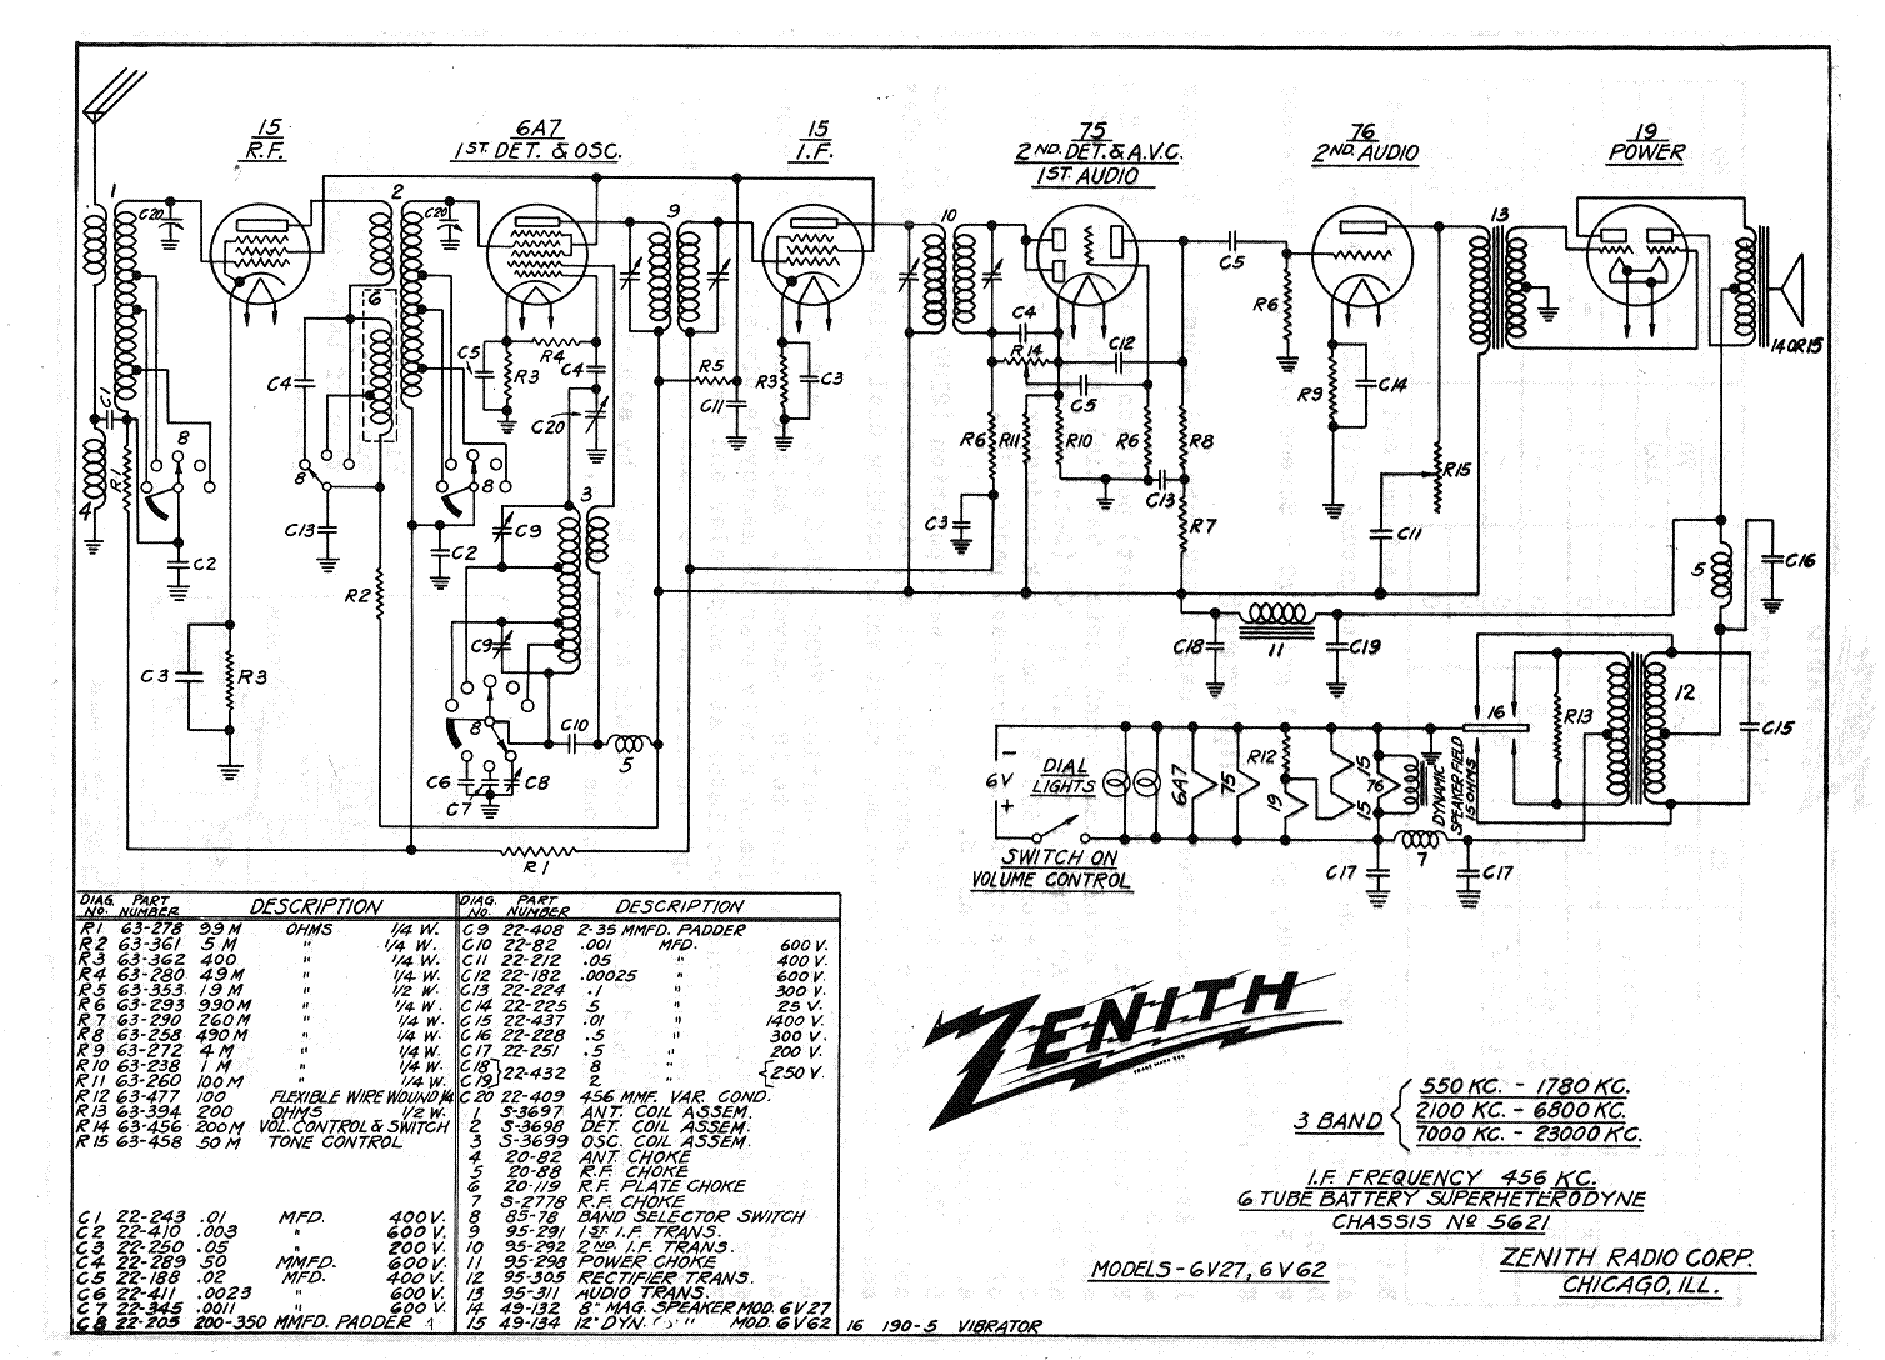 Zenith 6v27 6v62 Sch Service Manual Download Schematics